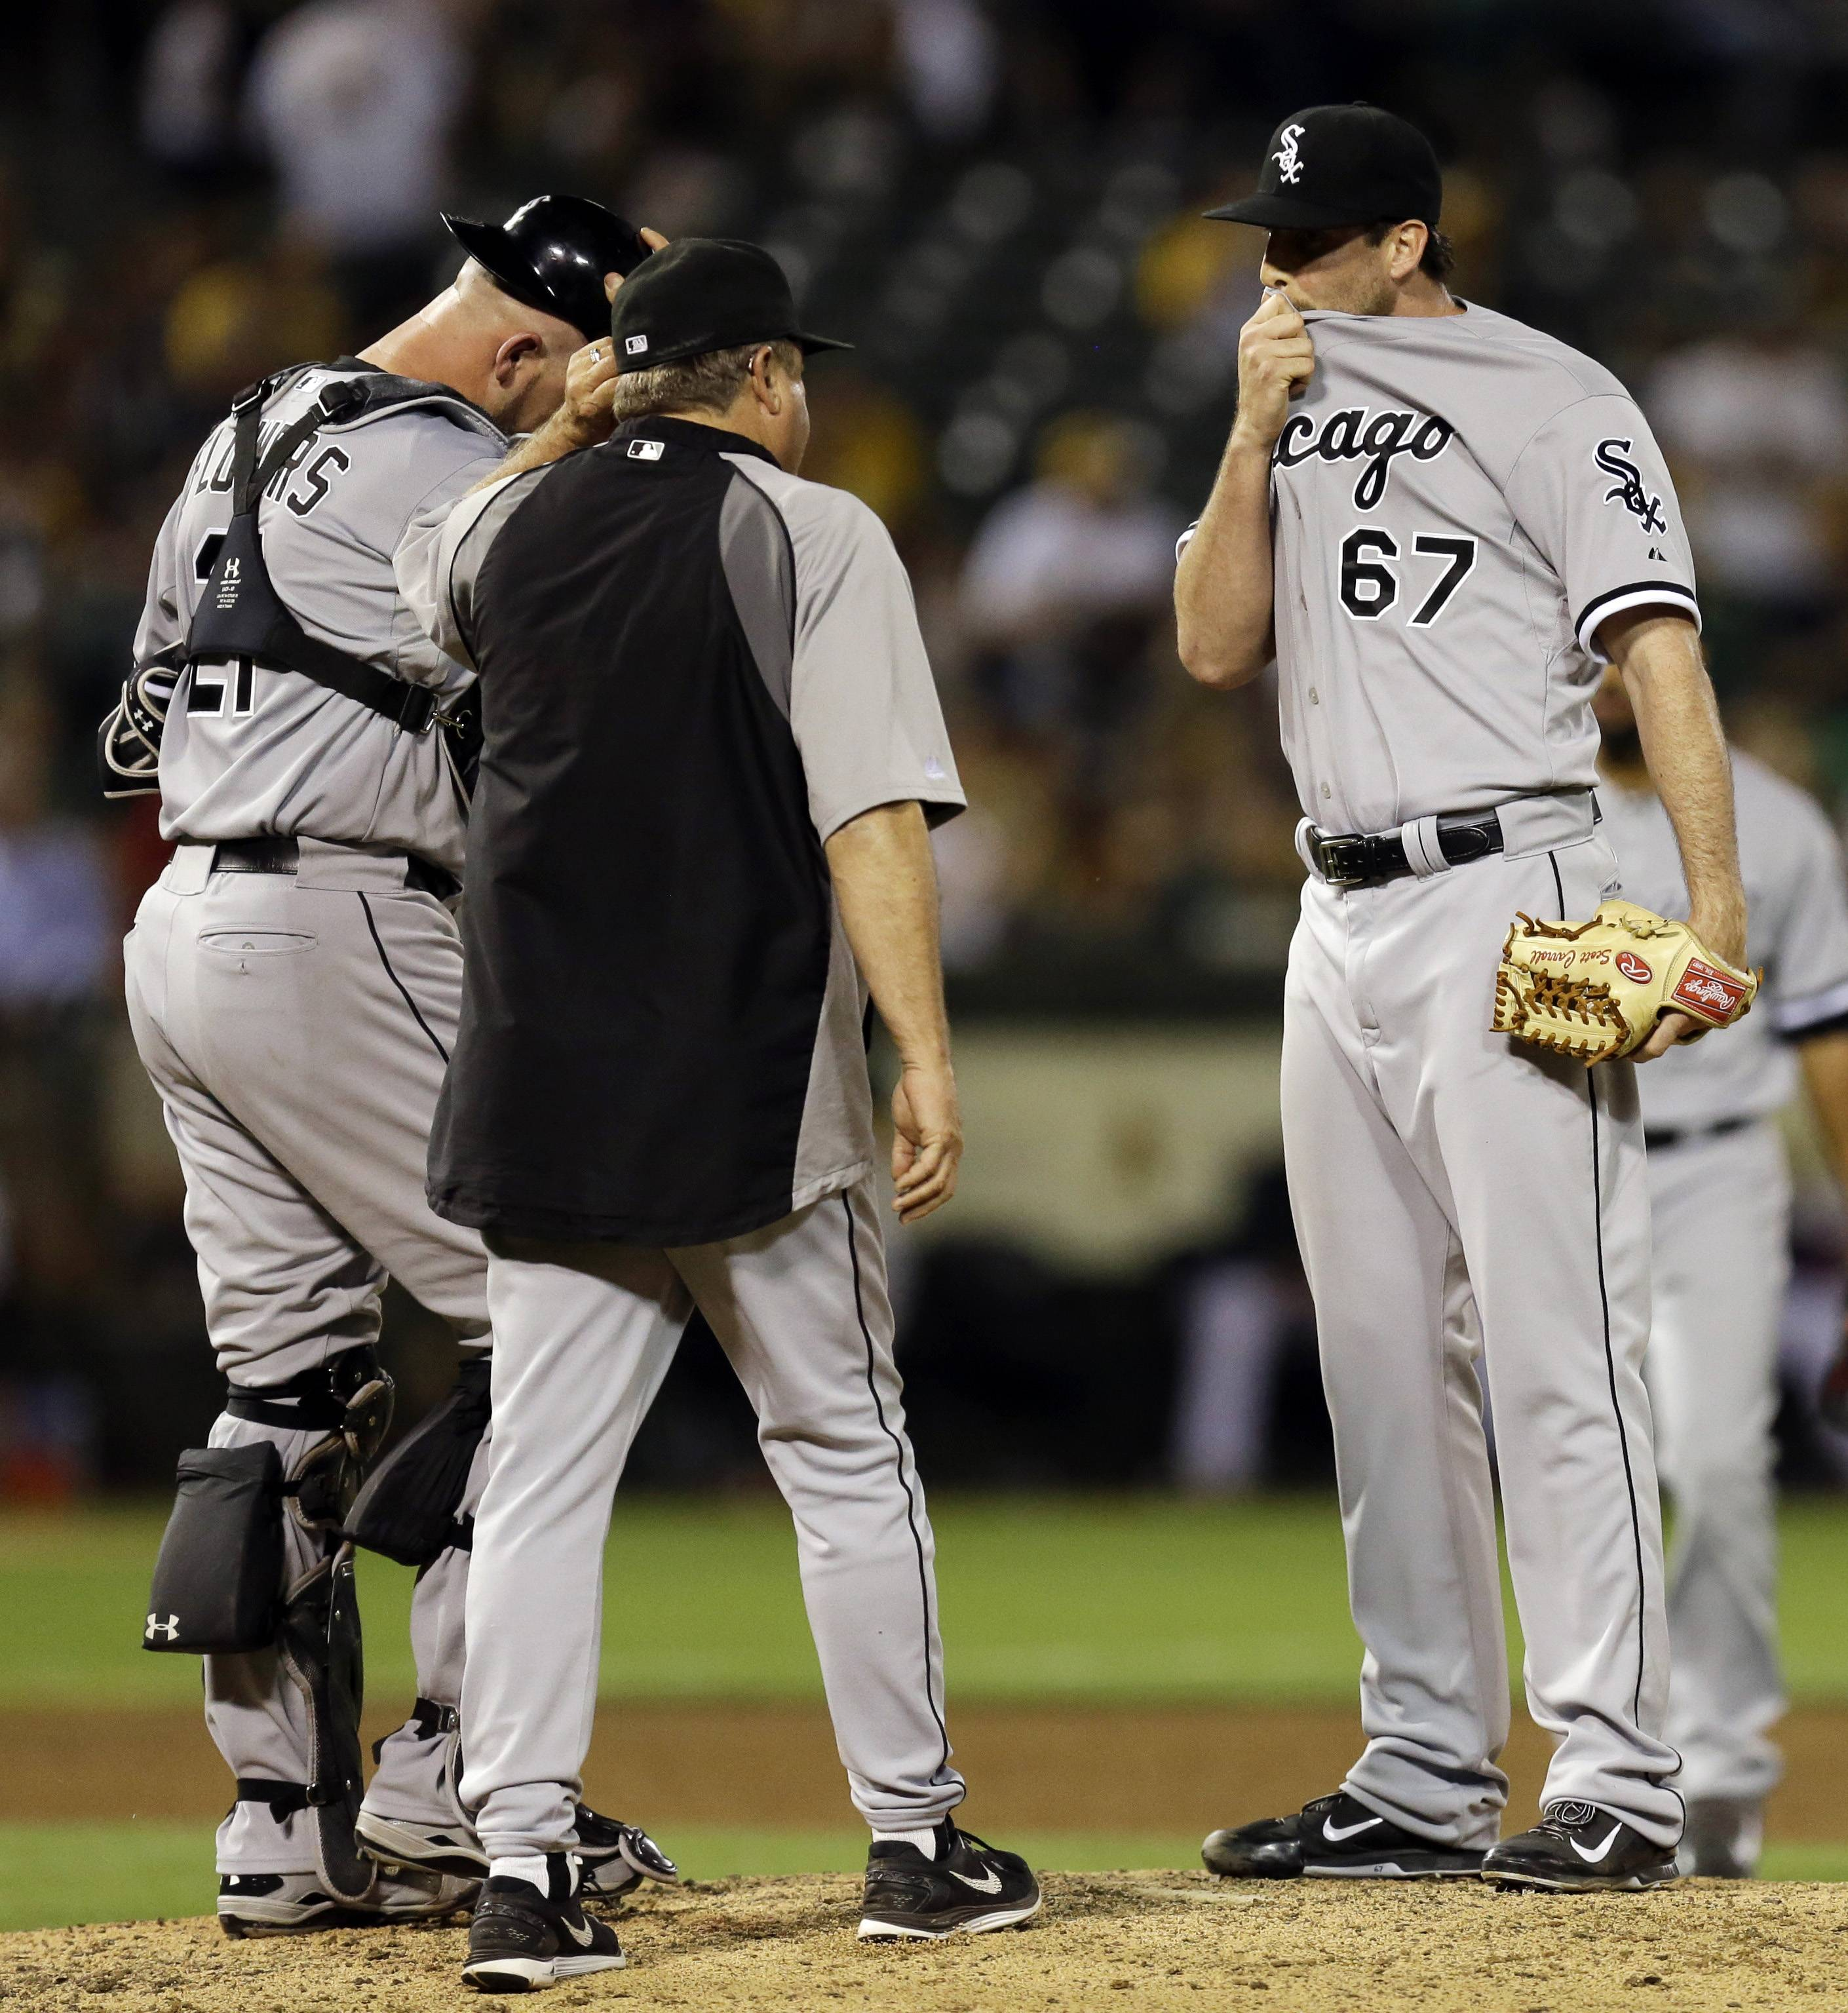 Chicago White Sox pitcher Scott Carroll (67) is visited on the pitching mound by coach Don Cooper in the fifth inning of a baseball game against the Oakland Athletics, Tuesday, May 13, 2014, in Oakland, Calif.